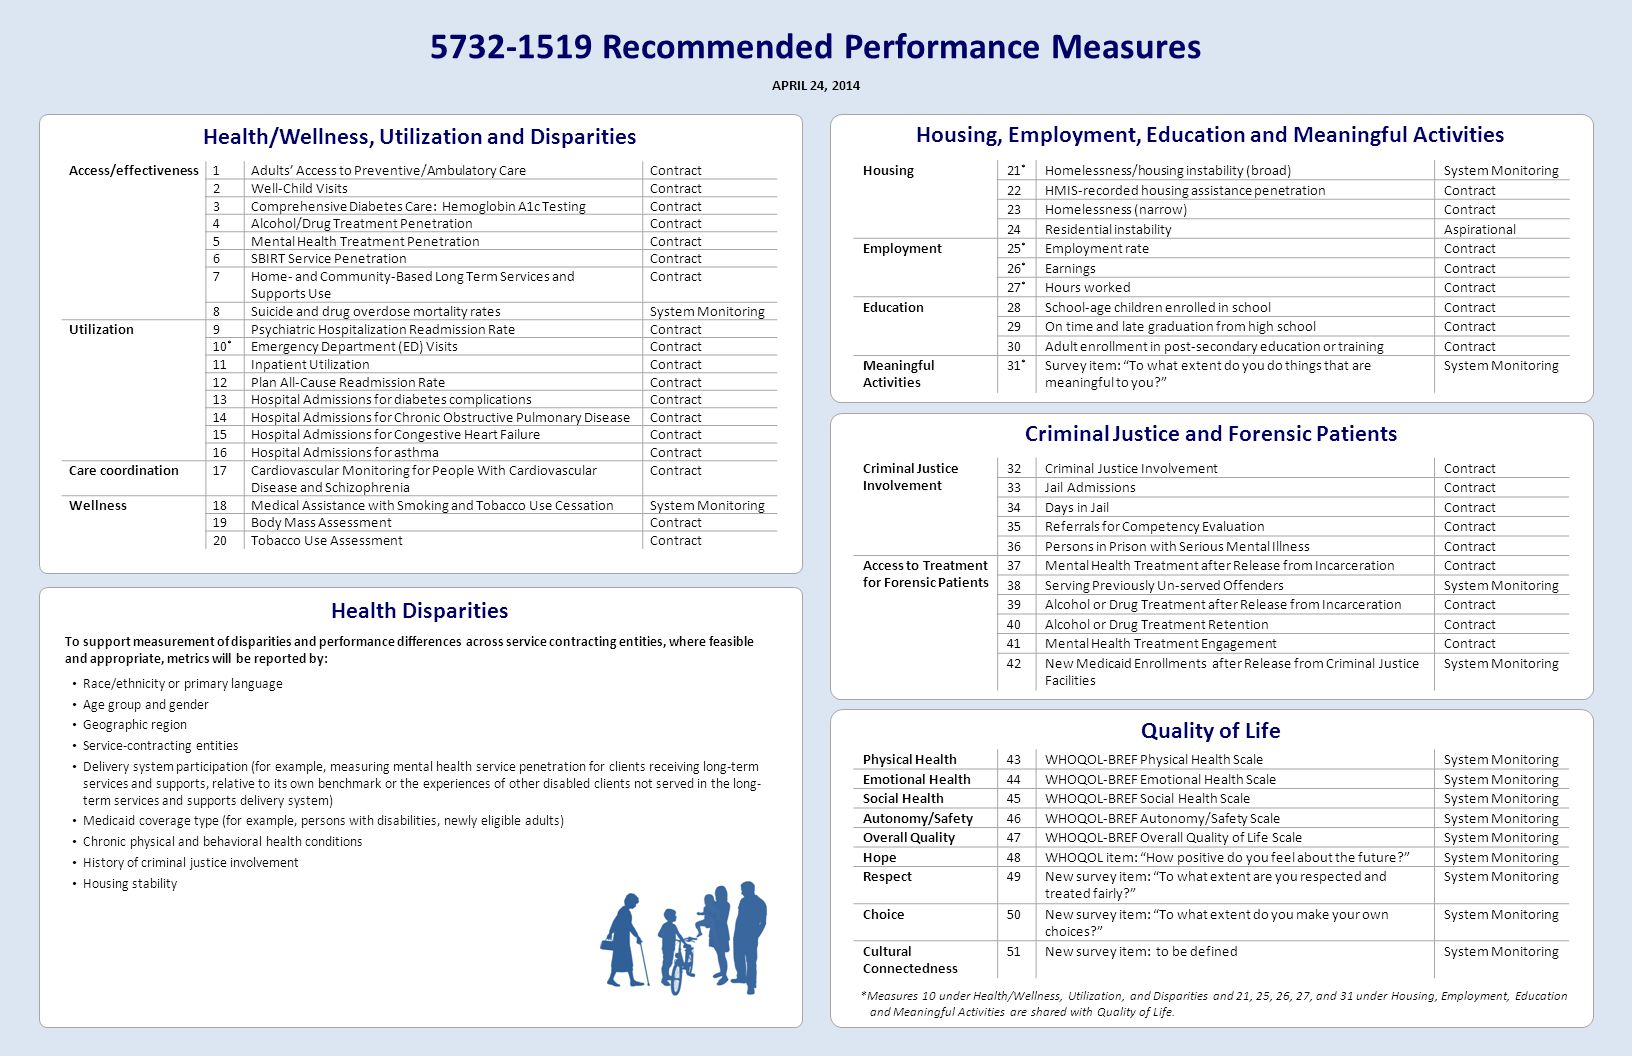 5732-1519 Recommended Performance Measures APRIL 24, 2014 Quality of Life Physical Health43WHOQOL-BREF Physical Health ScaleSystem Monitoring Emotiona